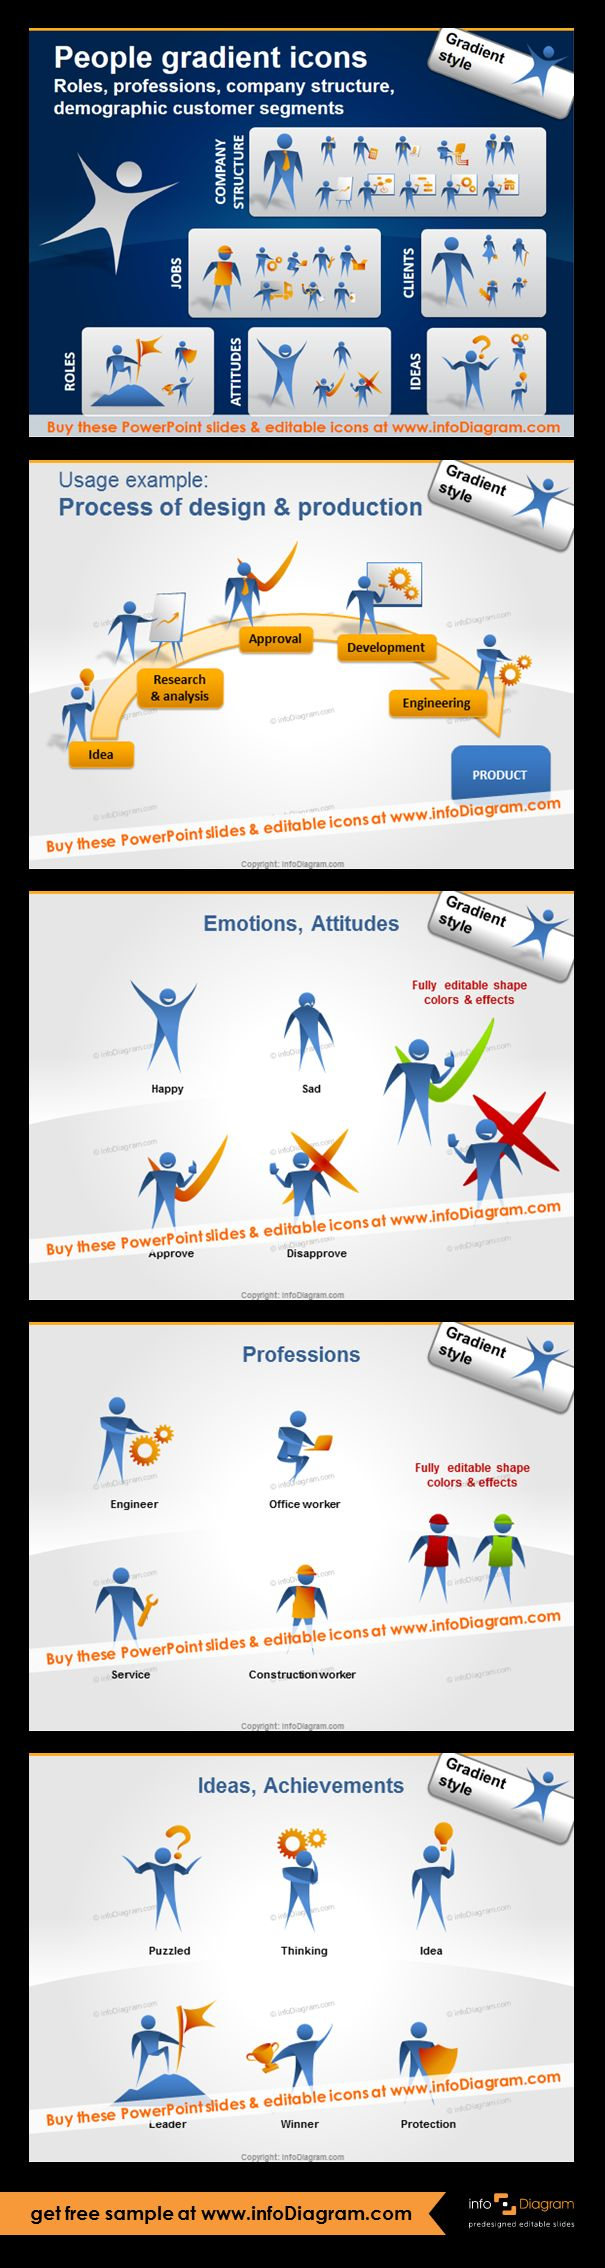 Editable gradient icons of various people roles and emotions for enhancing PowerPoint presentations. Illustration schema of design and production process. Jobs and professions: engineer, office worker, service, construction worker, doctor, pharmacist, packaging, delivery man. People Emotions and attitudes: happy man, sad man, approving person, acceptance, disaproval, rejecting person. Fully editable color, filling and size in PowerPoint.